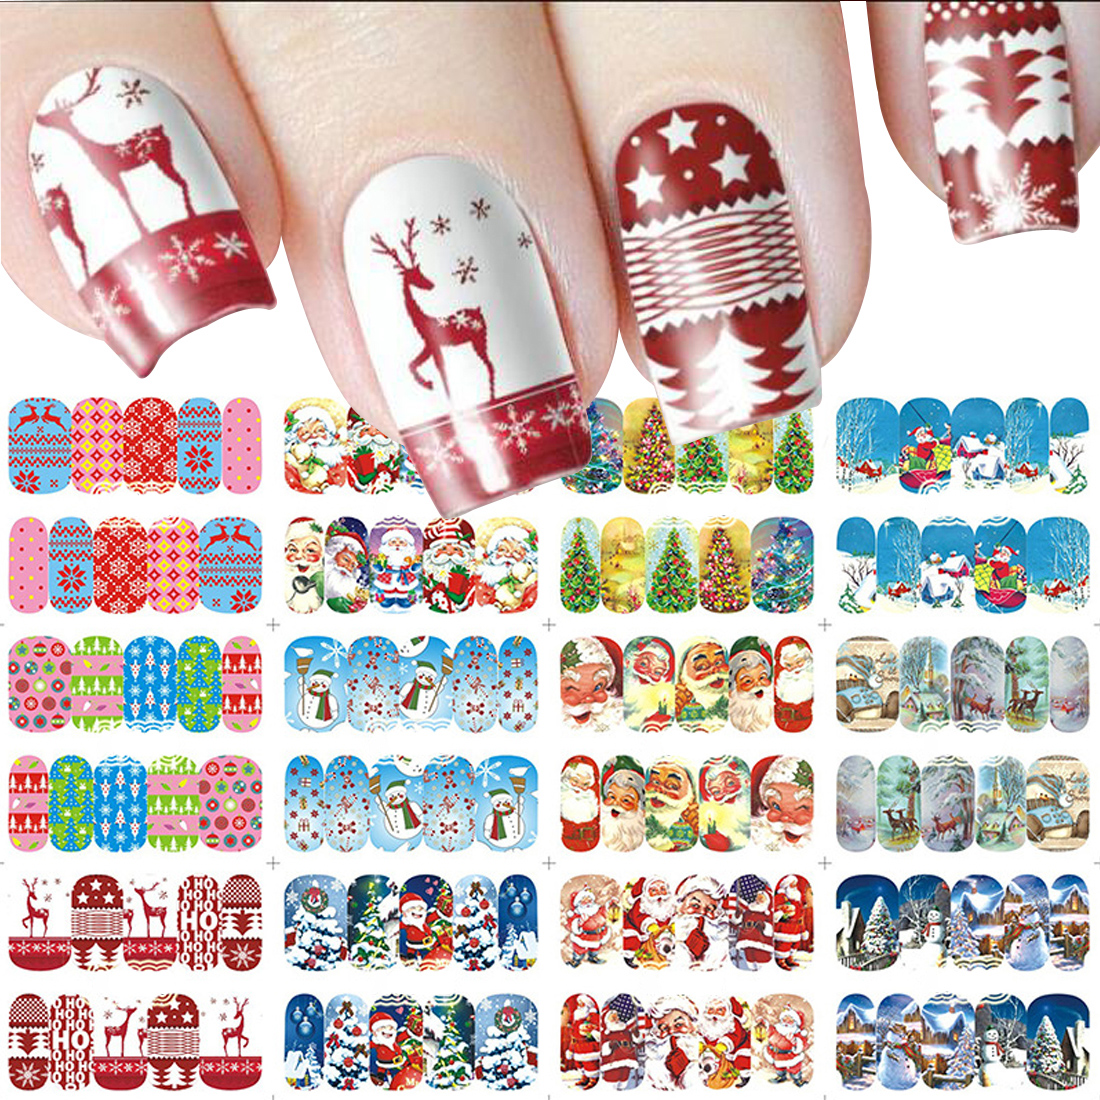 Nail Art sticker - New Year Tattoo 12 Sheets Christmas Water Decal